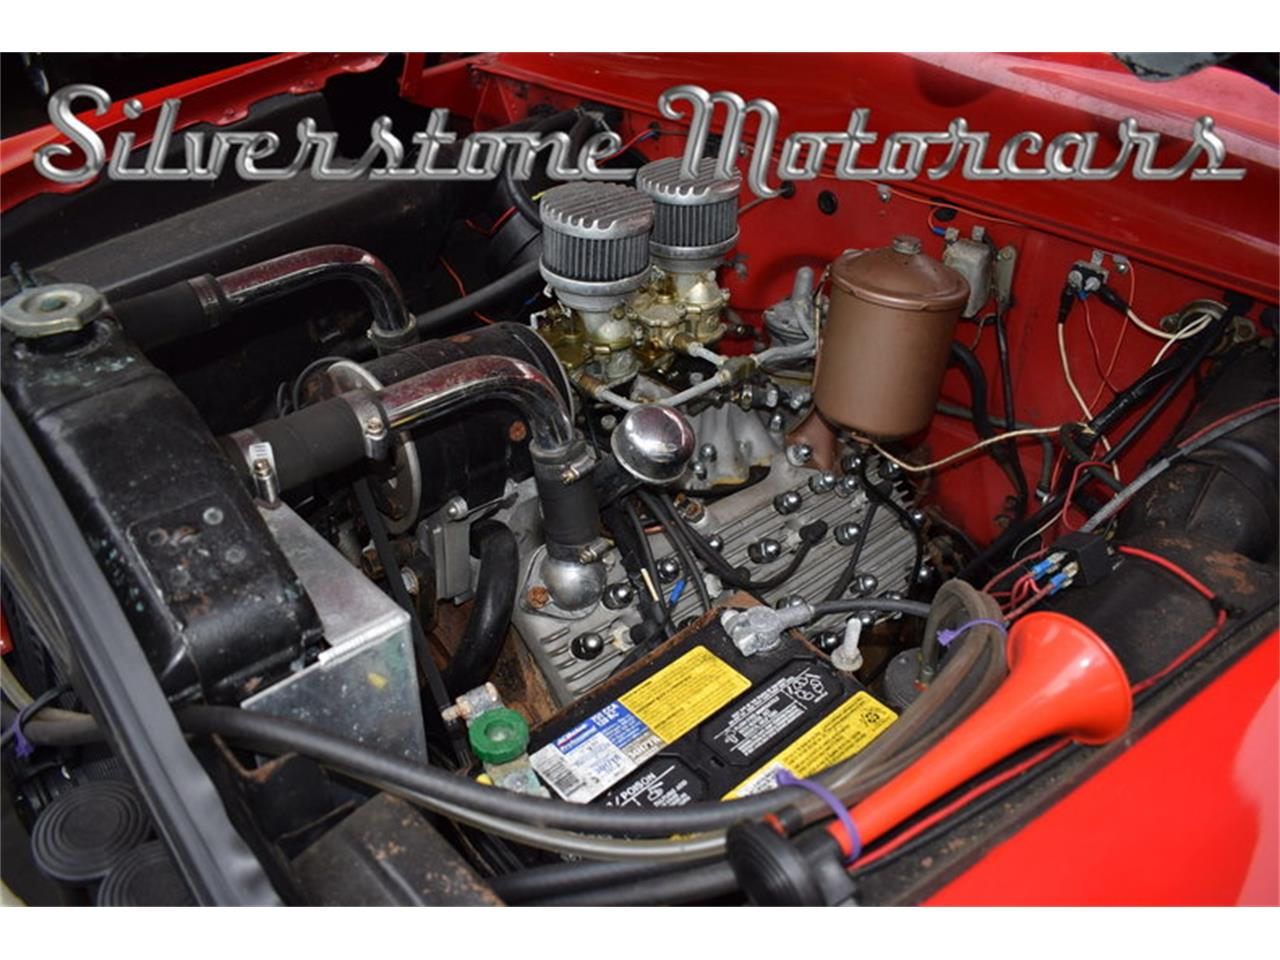 Large Picture of '51 Ford Custom Deluxe located in North Andover Massachusetts Offered by Silverstone Motorcars - L79S